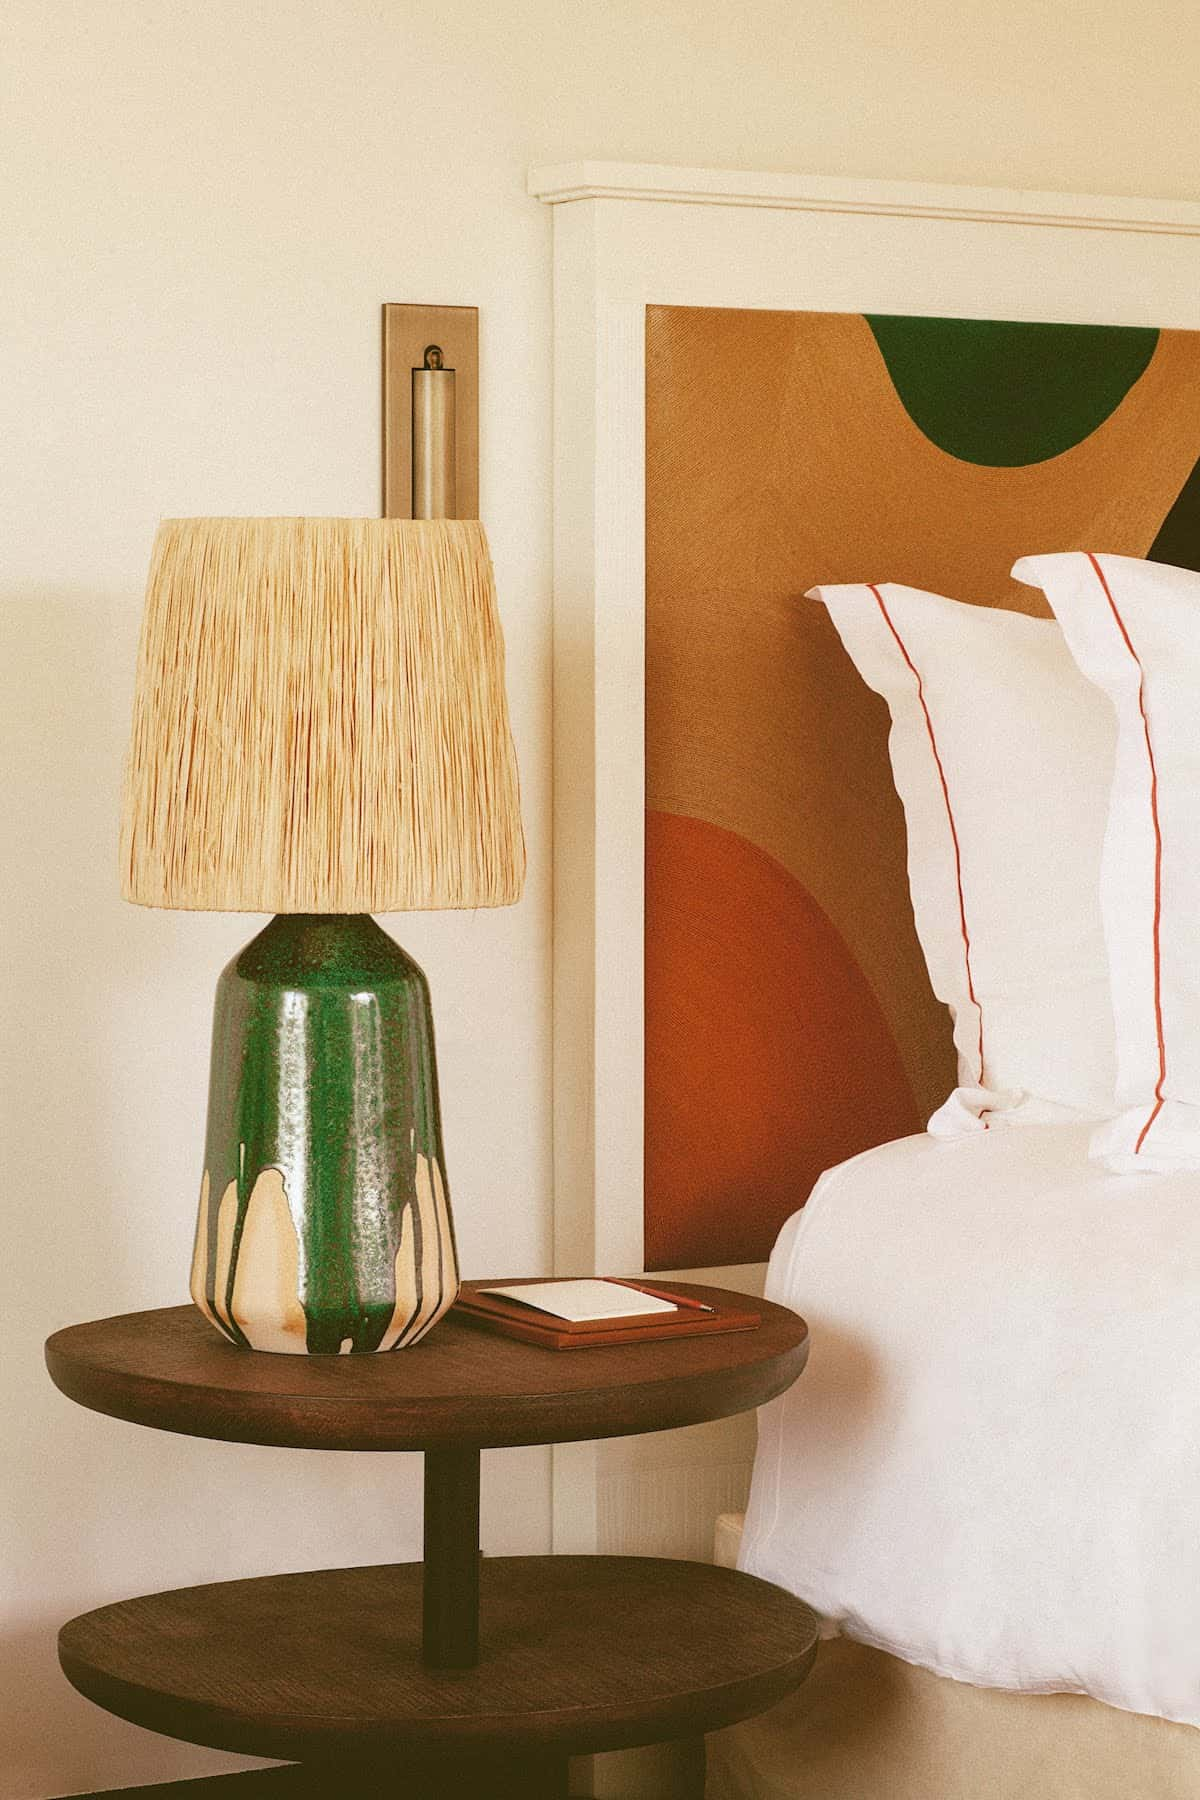 Lampshade with clay base on a sidetable next to a bed with colourful headboard in the Lou Pinet Hotel in St Tropez